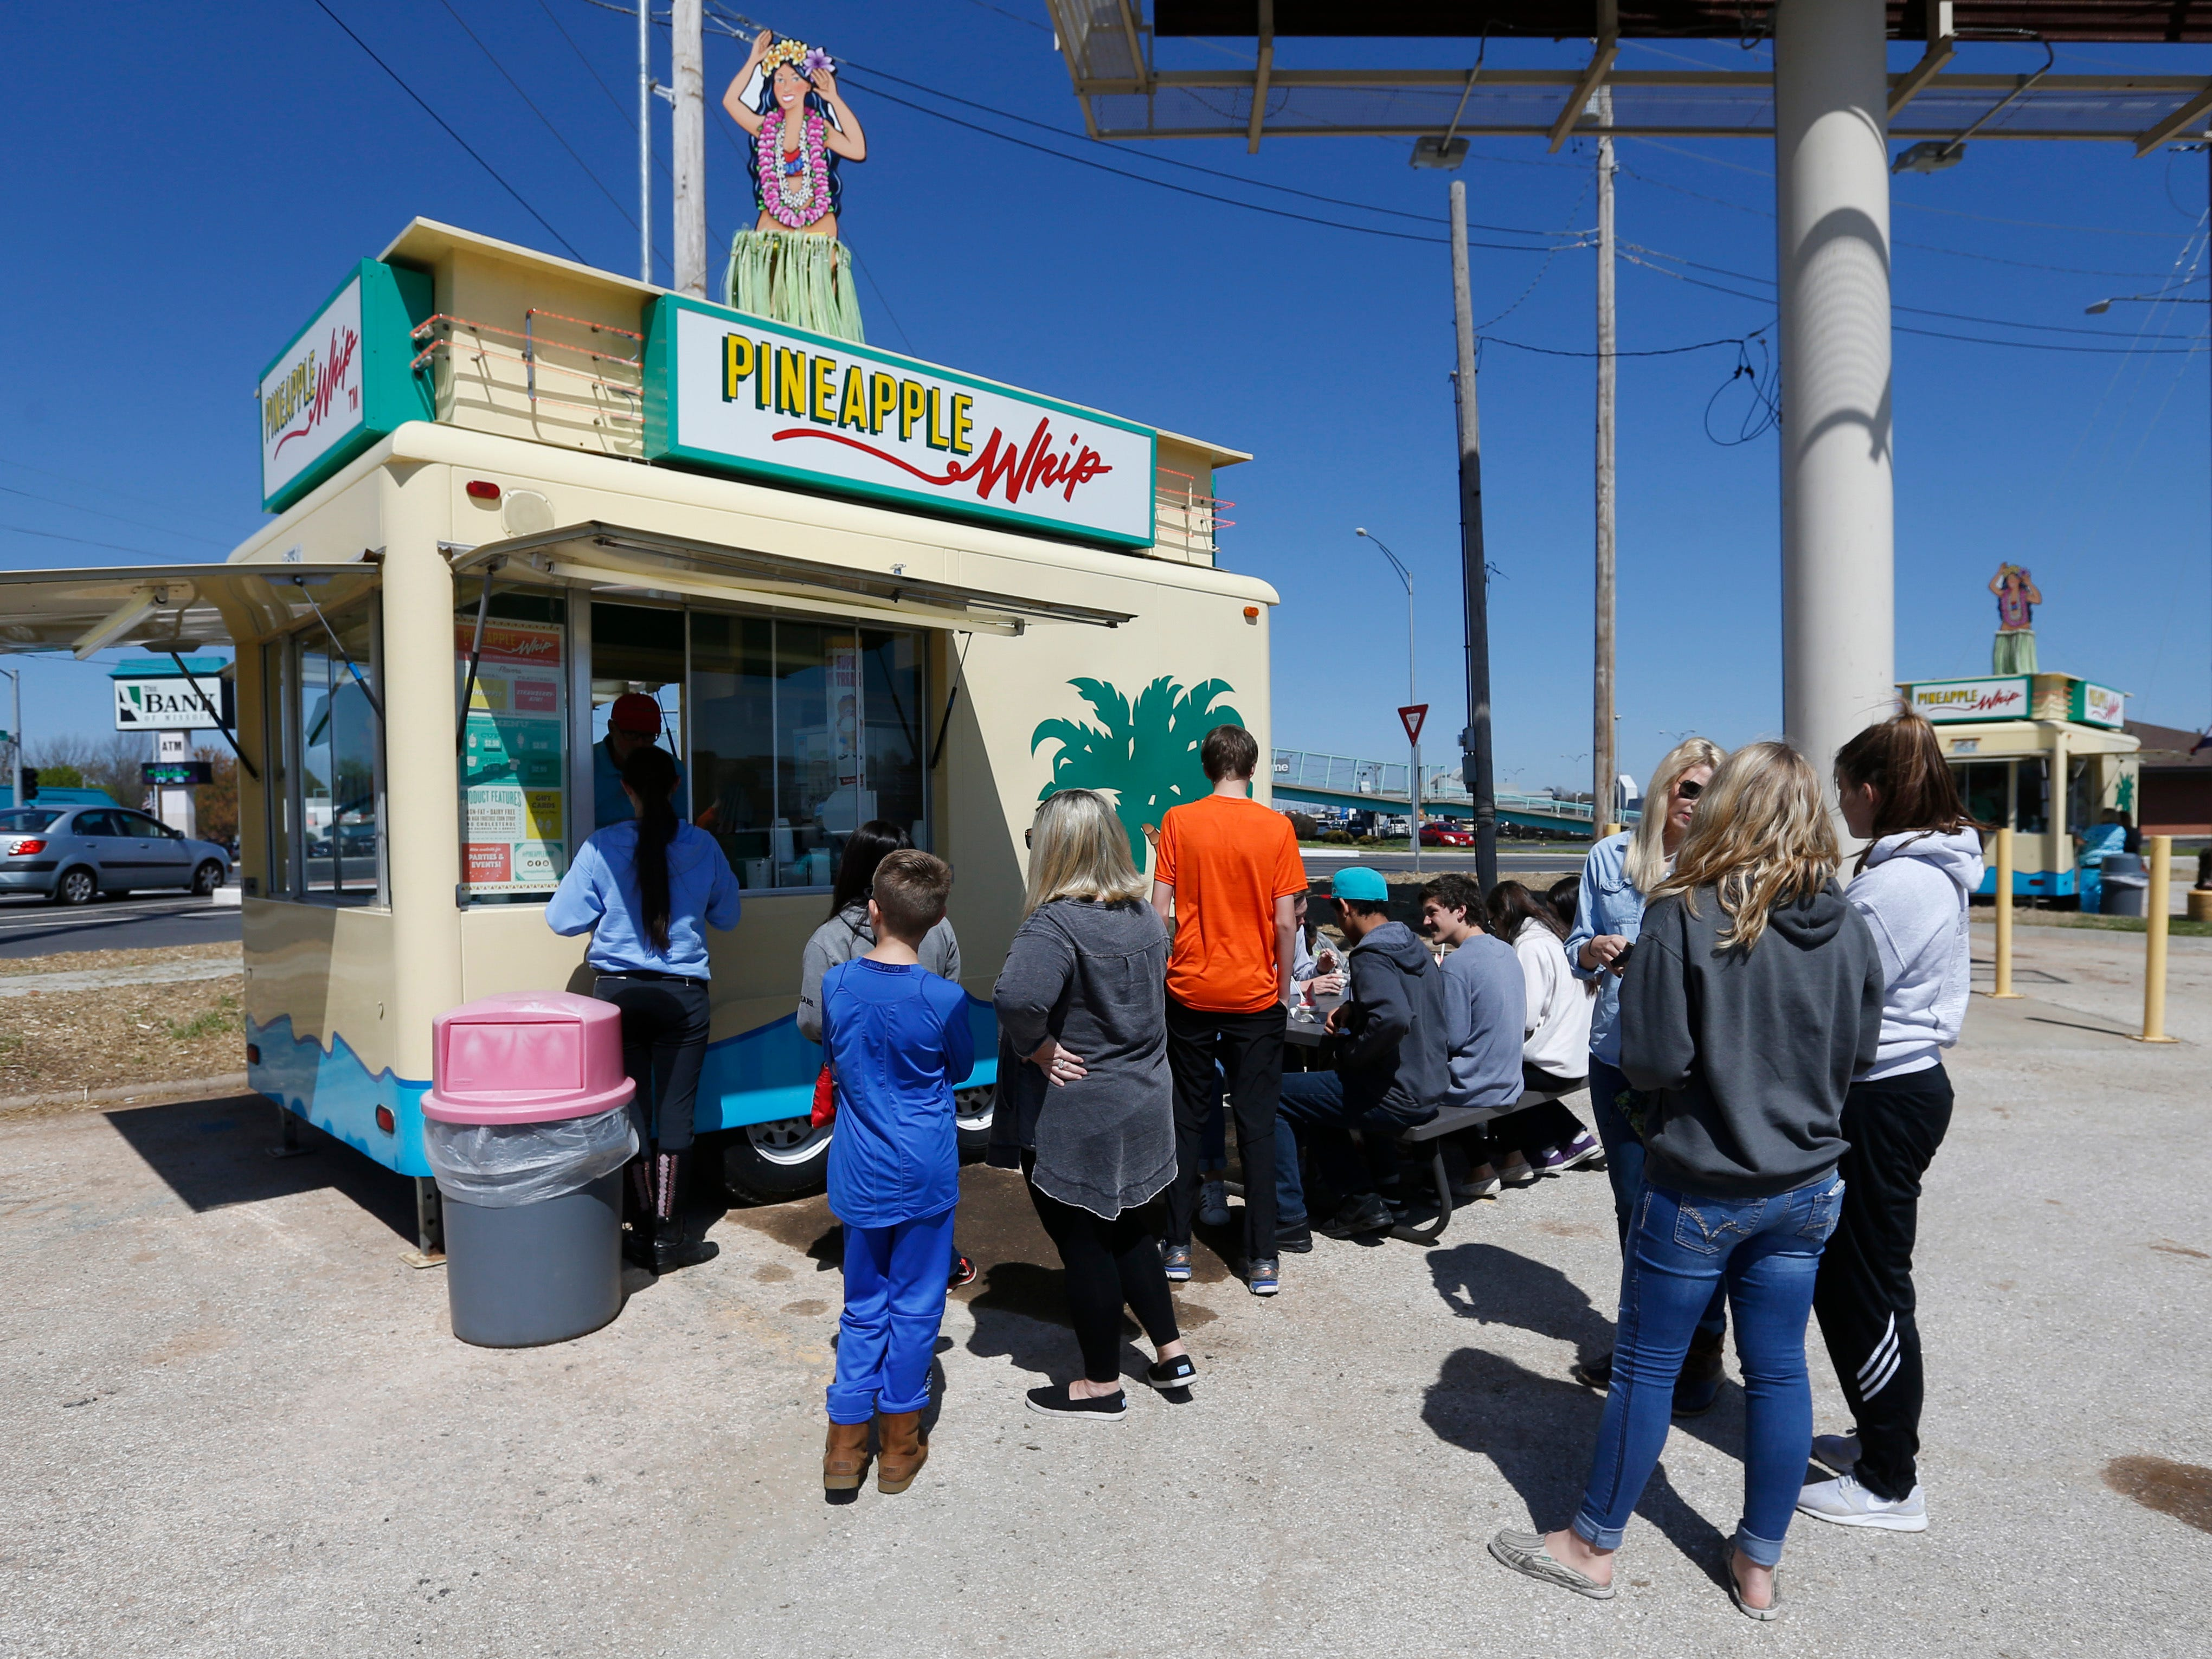 Pineapple Whip got its start in 1974 at the Ozark Empire Fairgrounds. Dan Fortner managed the fairgrounds and came up with the formula for the sweet treat. Now, Pineapple Whip can be found being served from trailers around town.